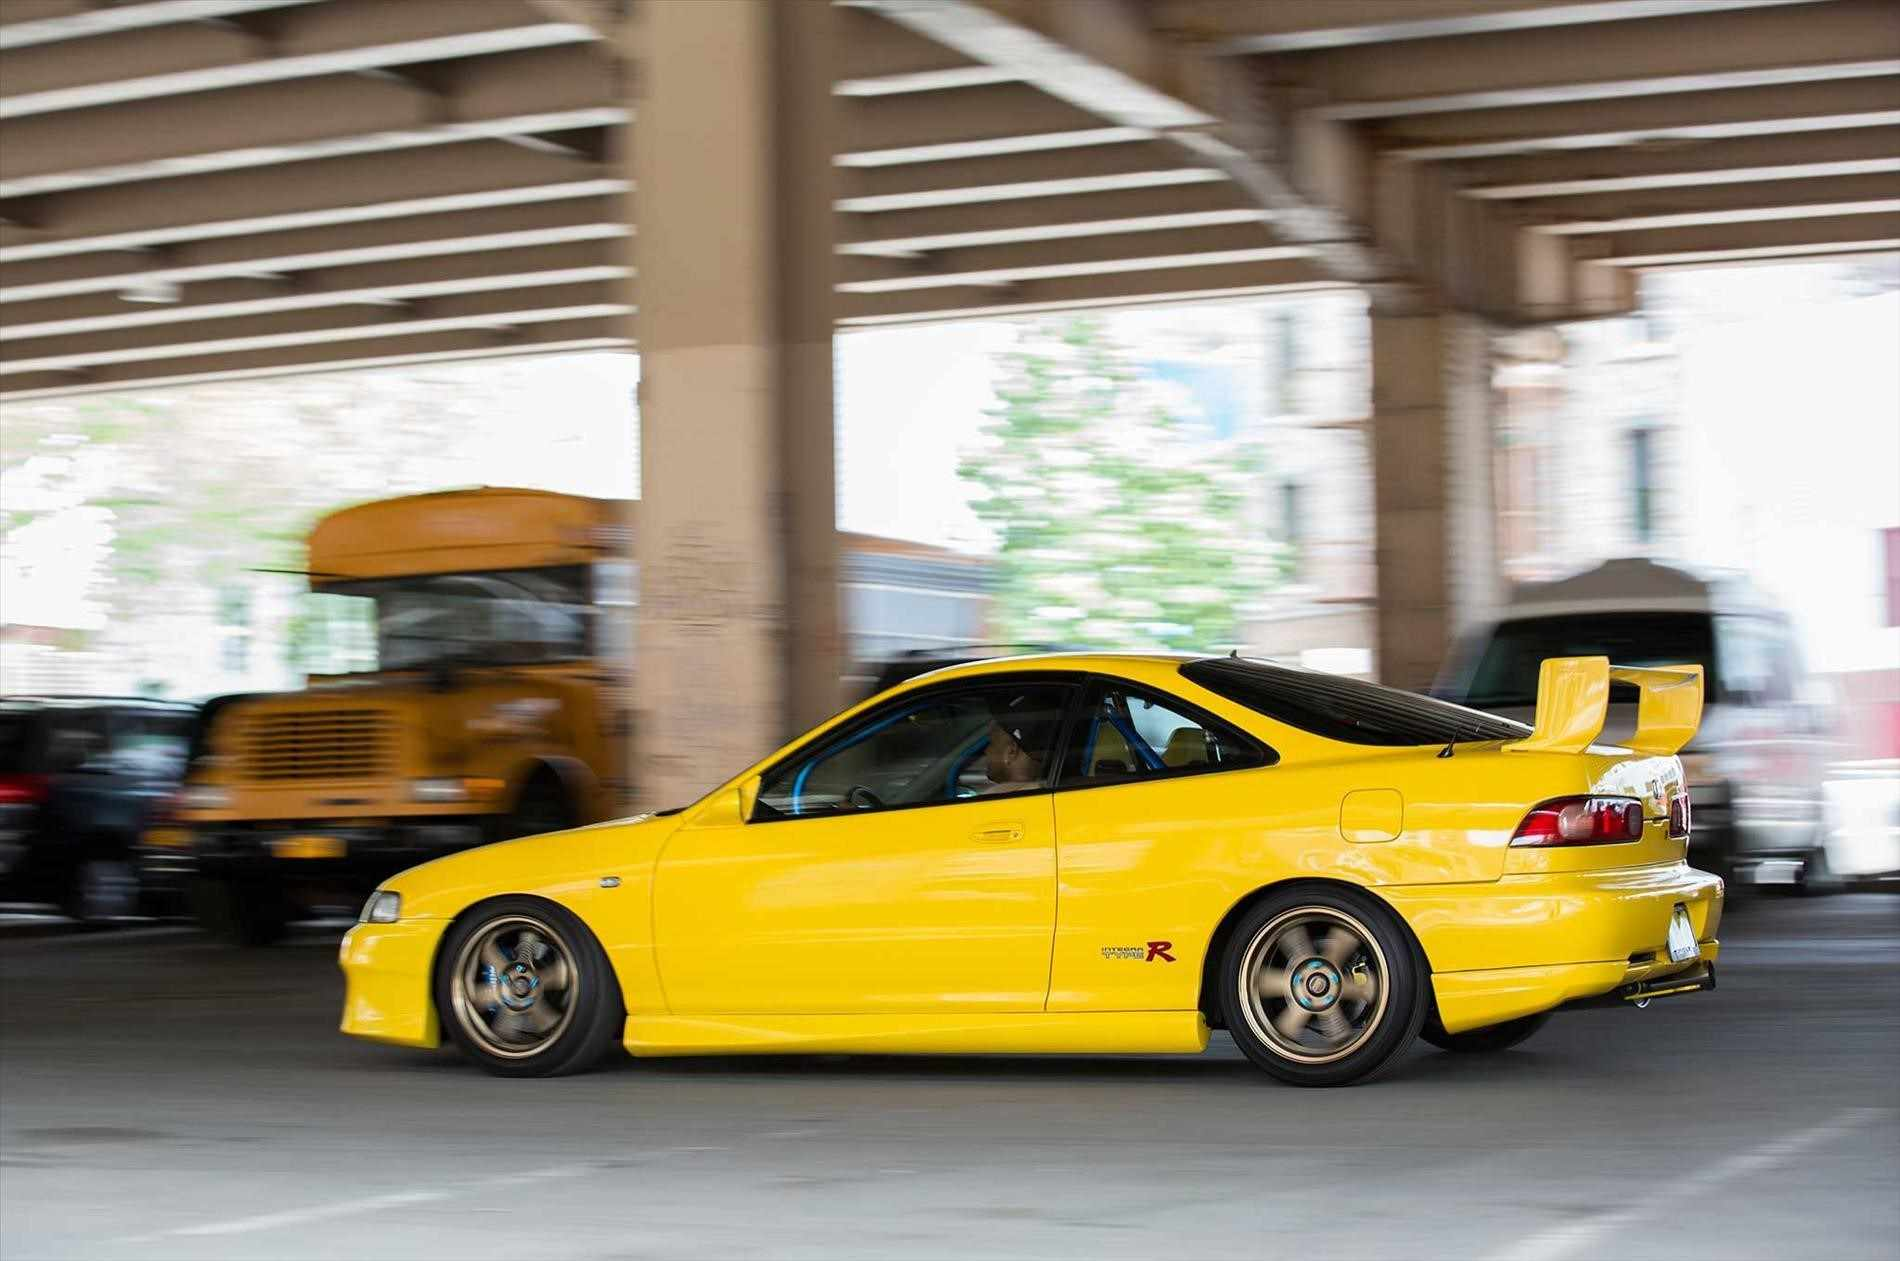 Acura Integra Type R In Acura Integra Wallpapers Group Honda Type R